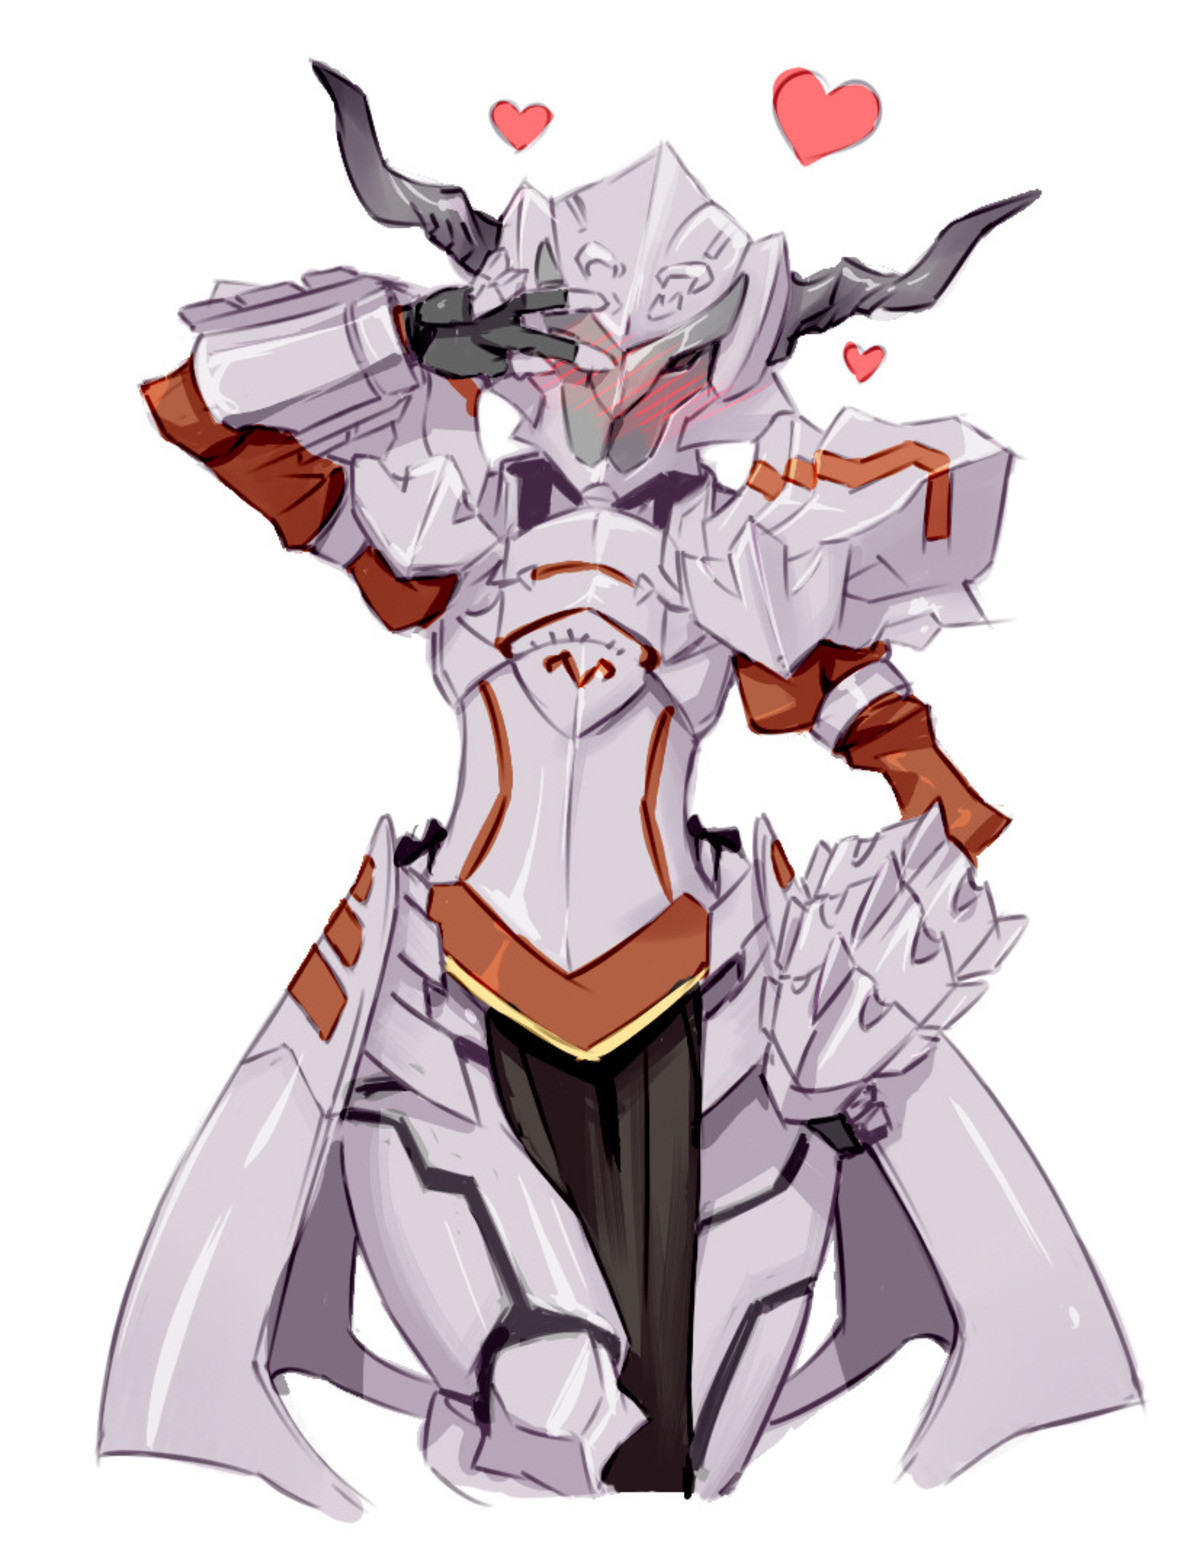 Kht Comp 3: Lewd Armor Works. Previous Knight Comp join list: Fate (421 subs)Mention History join list:. and not many boob plates either. Amazing. I want to pet them all.